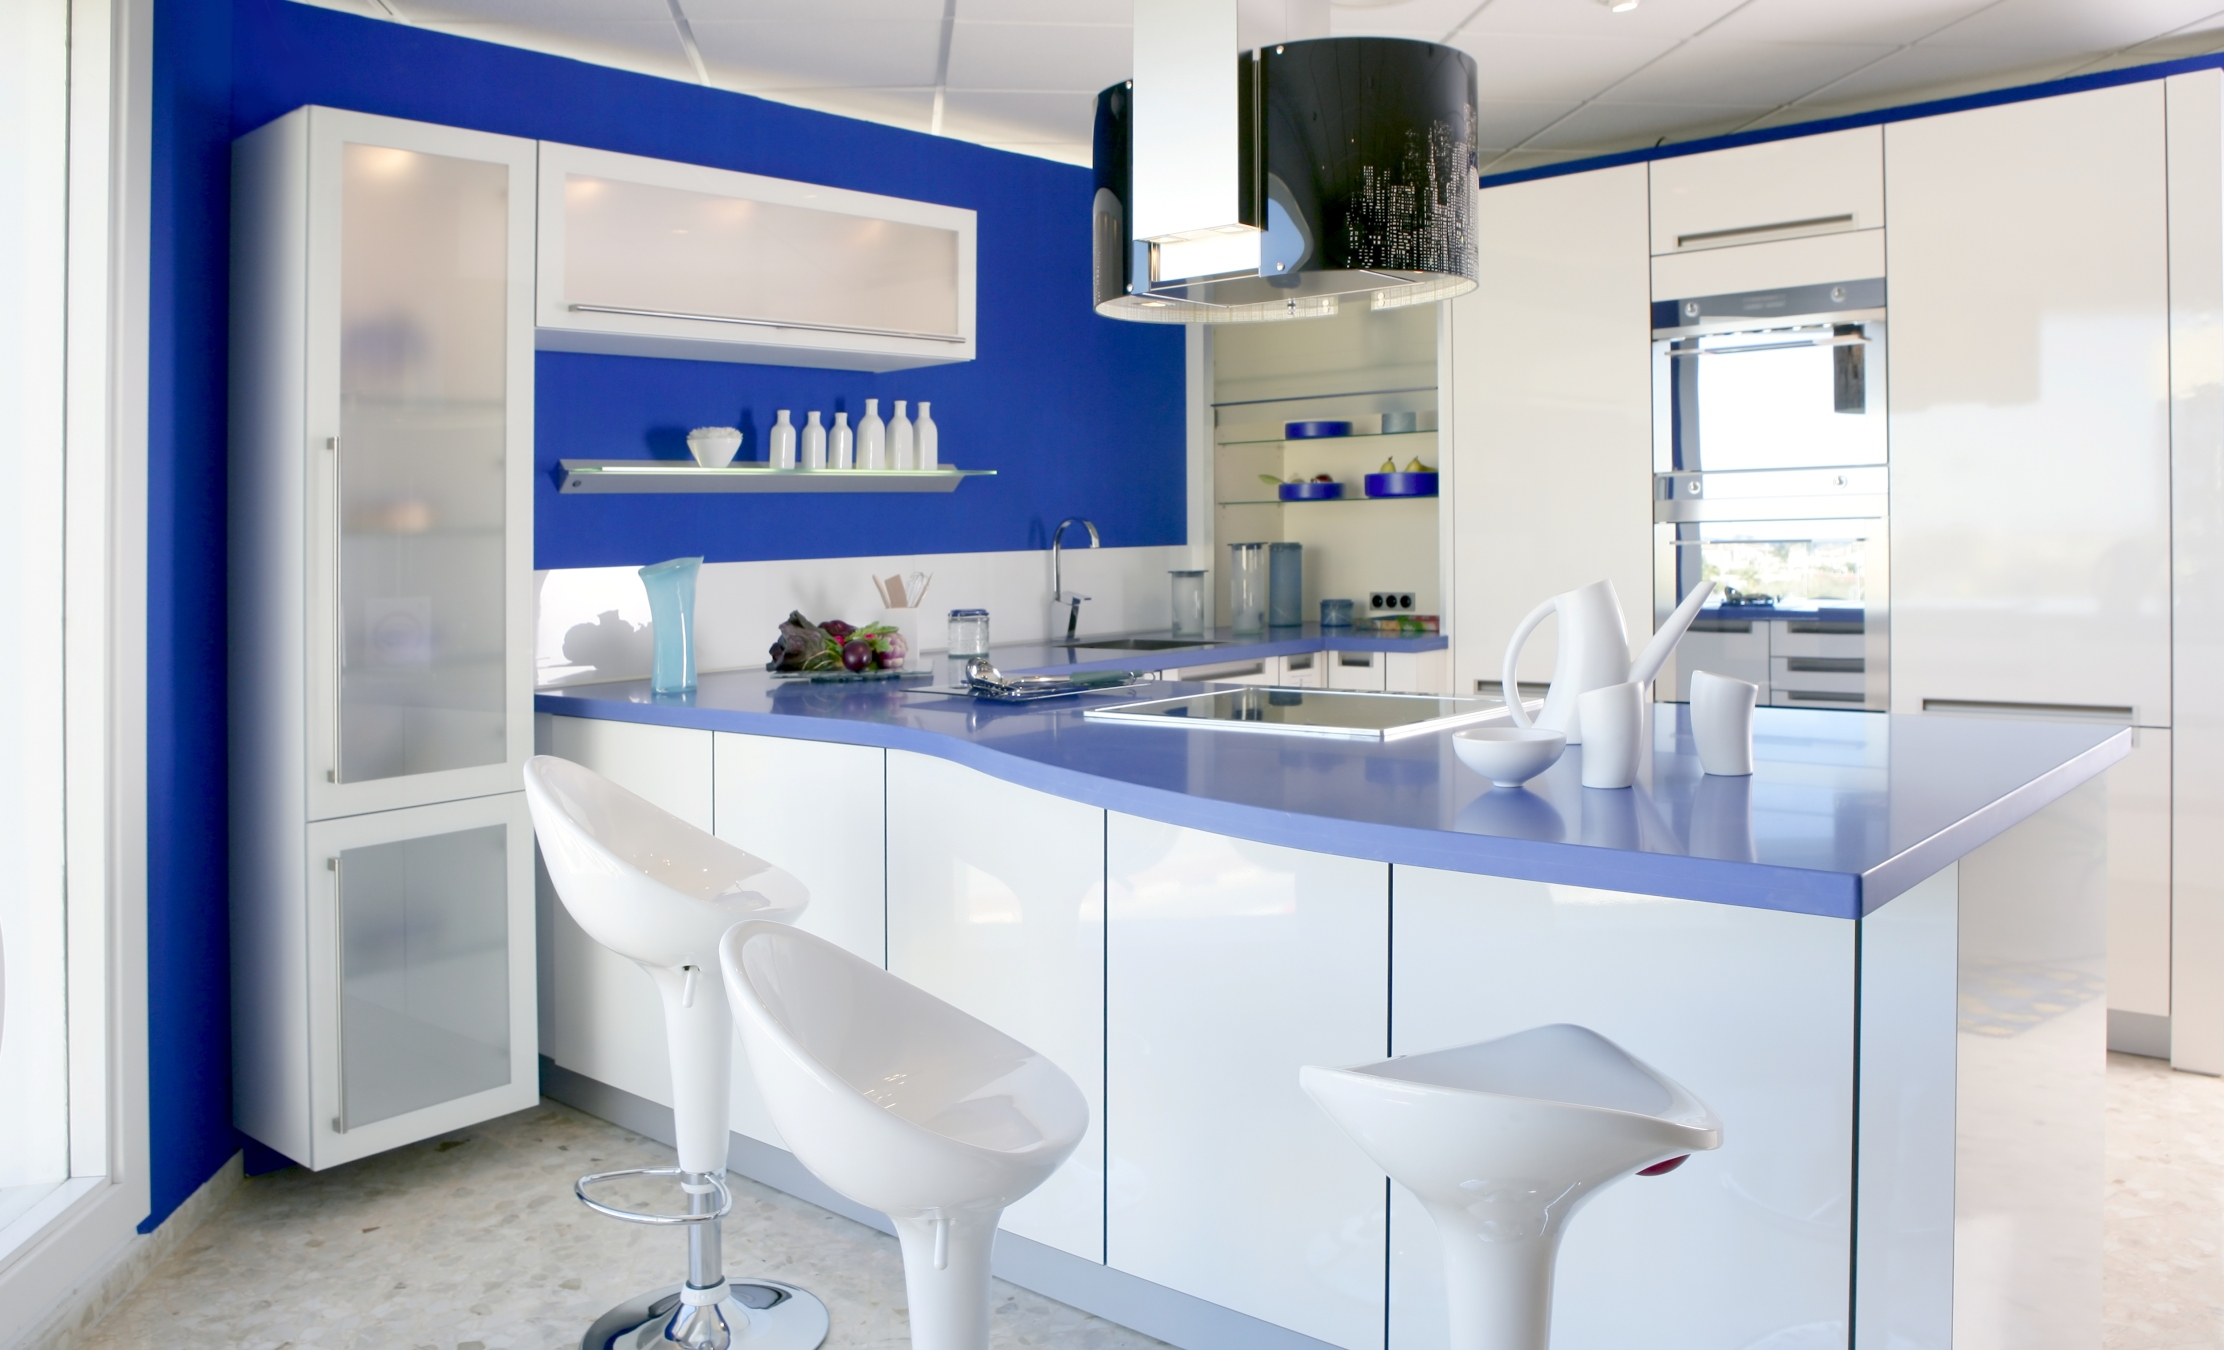 Kitchen Plan In Blue Theme With Glossy Blue Kitchen Countertop And Kitchen Island As